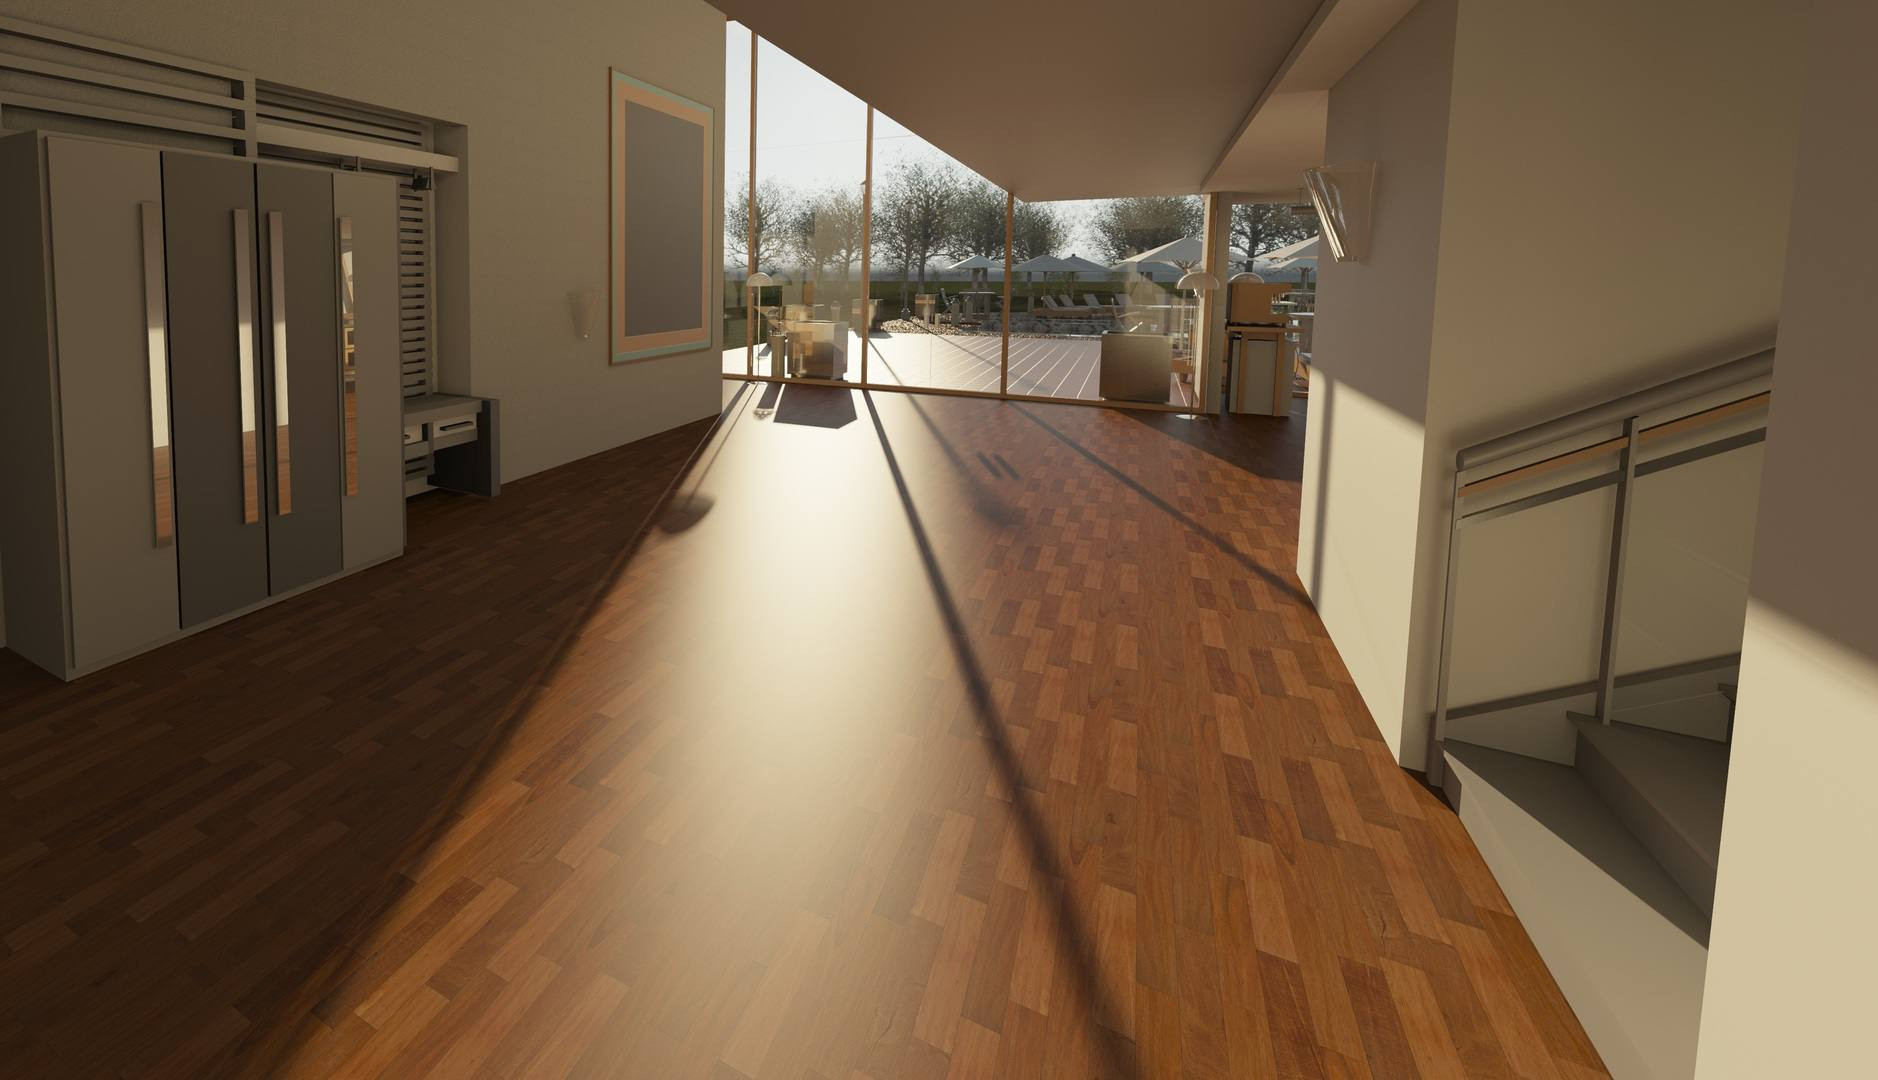 Zack Hardwood Flooring Of Common Flooring Types Currently Used In Renovation and Building Inside Architecture Wood House Floor Interior Window 917178 Pxhere Com 5ba27a2cc9e77c00503b27b9